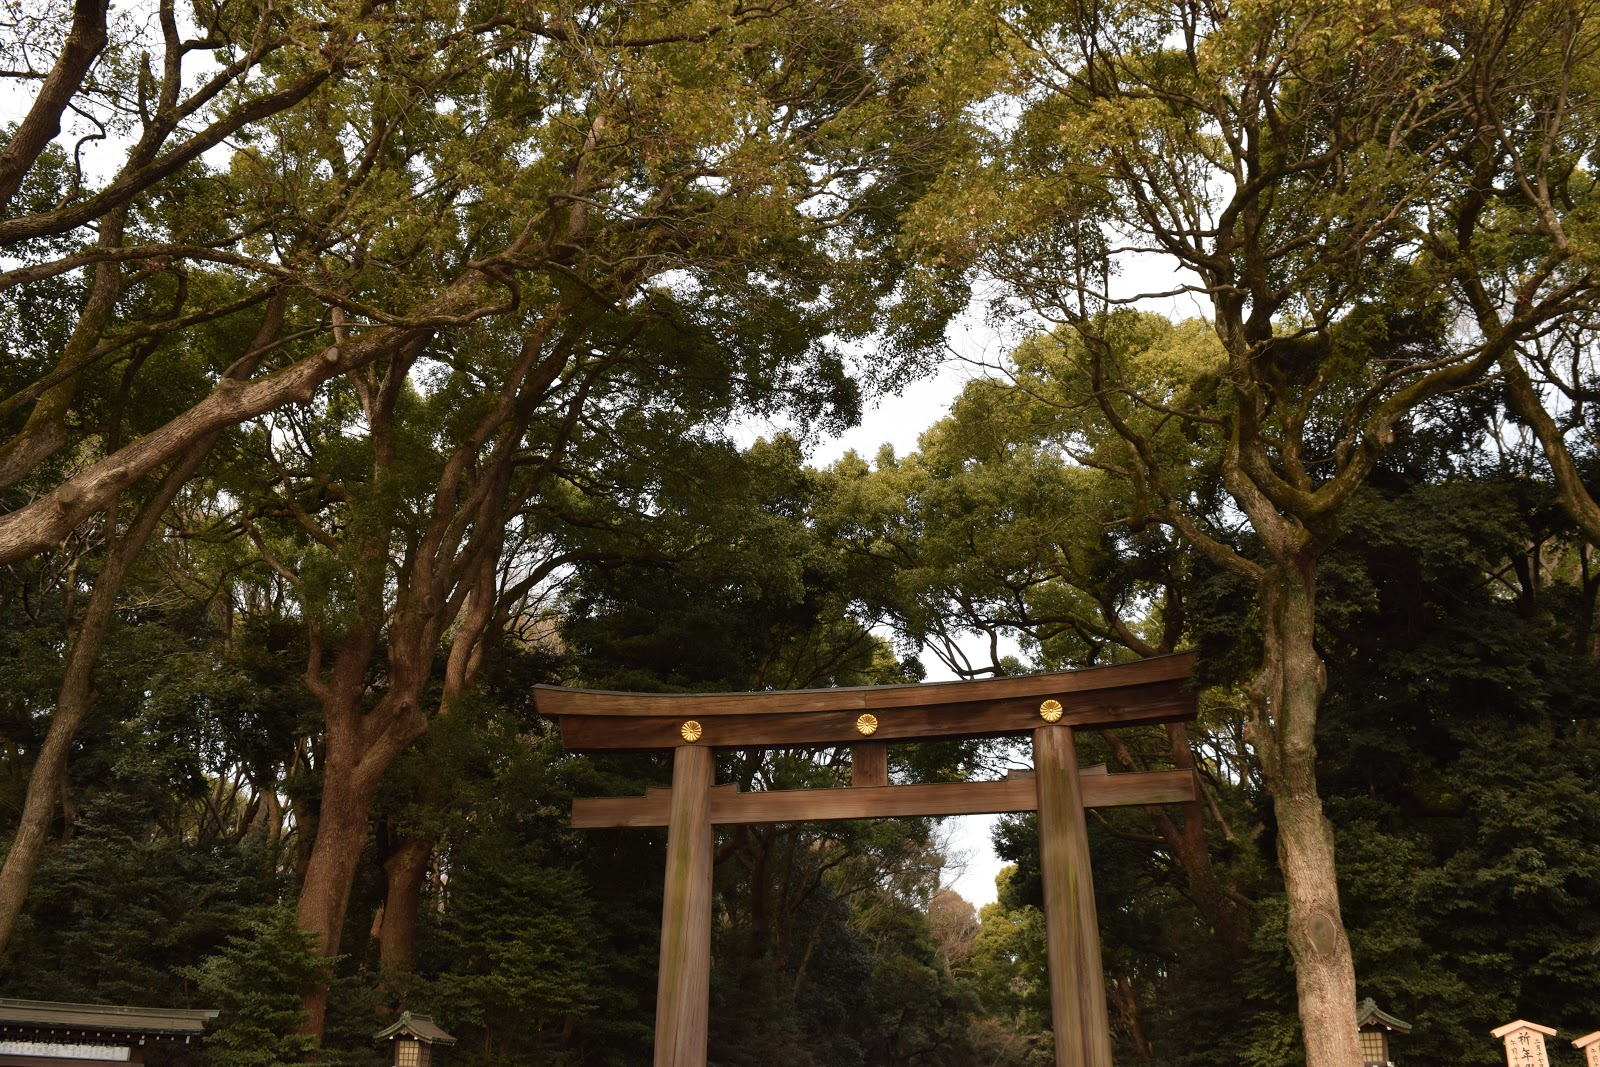 Torii Shrine gate of Meiji Jingu